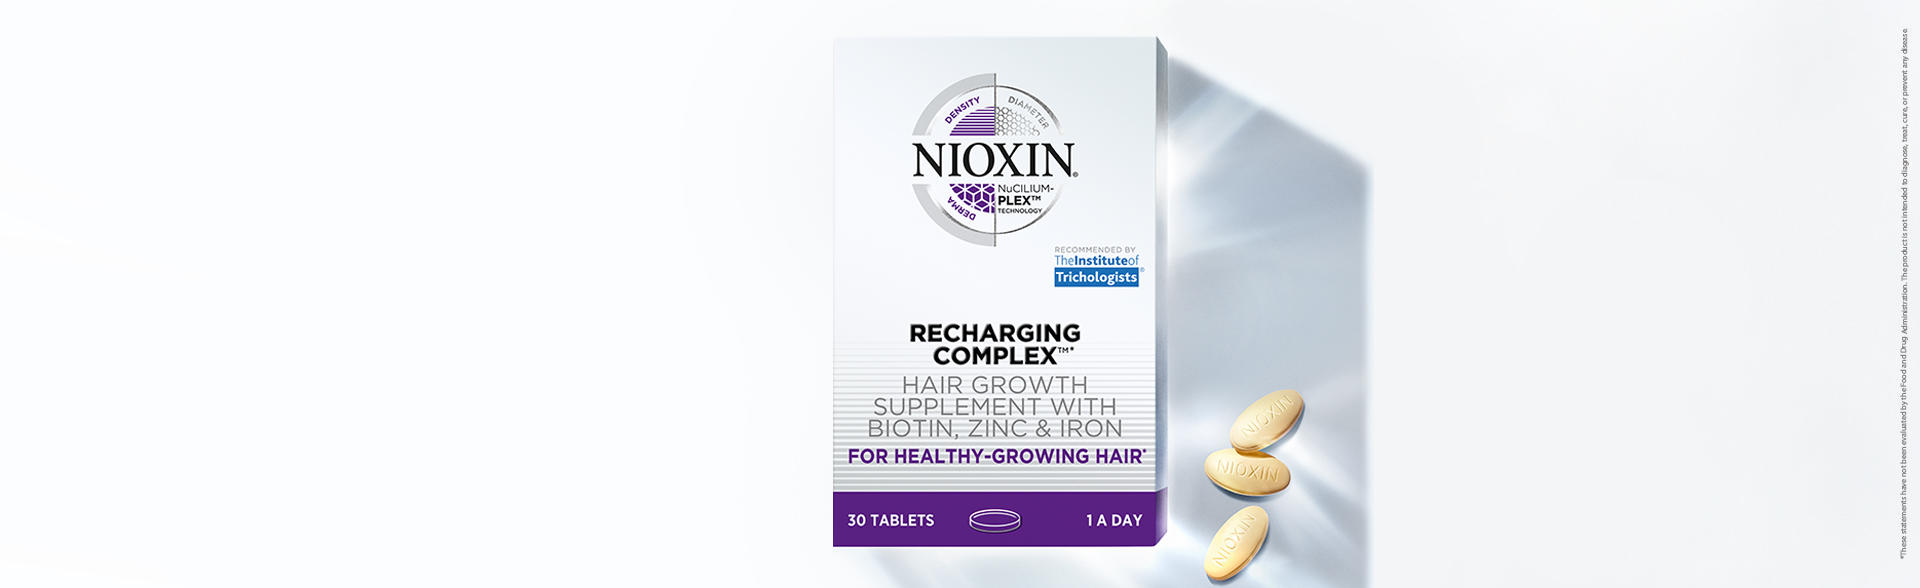 Product Index Explore Nioxin Hair Products Nioxin